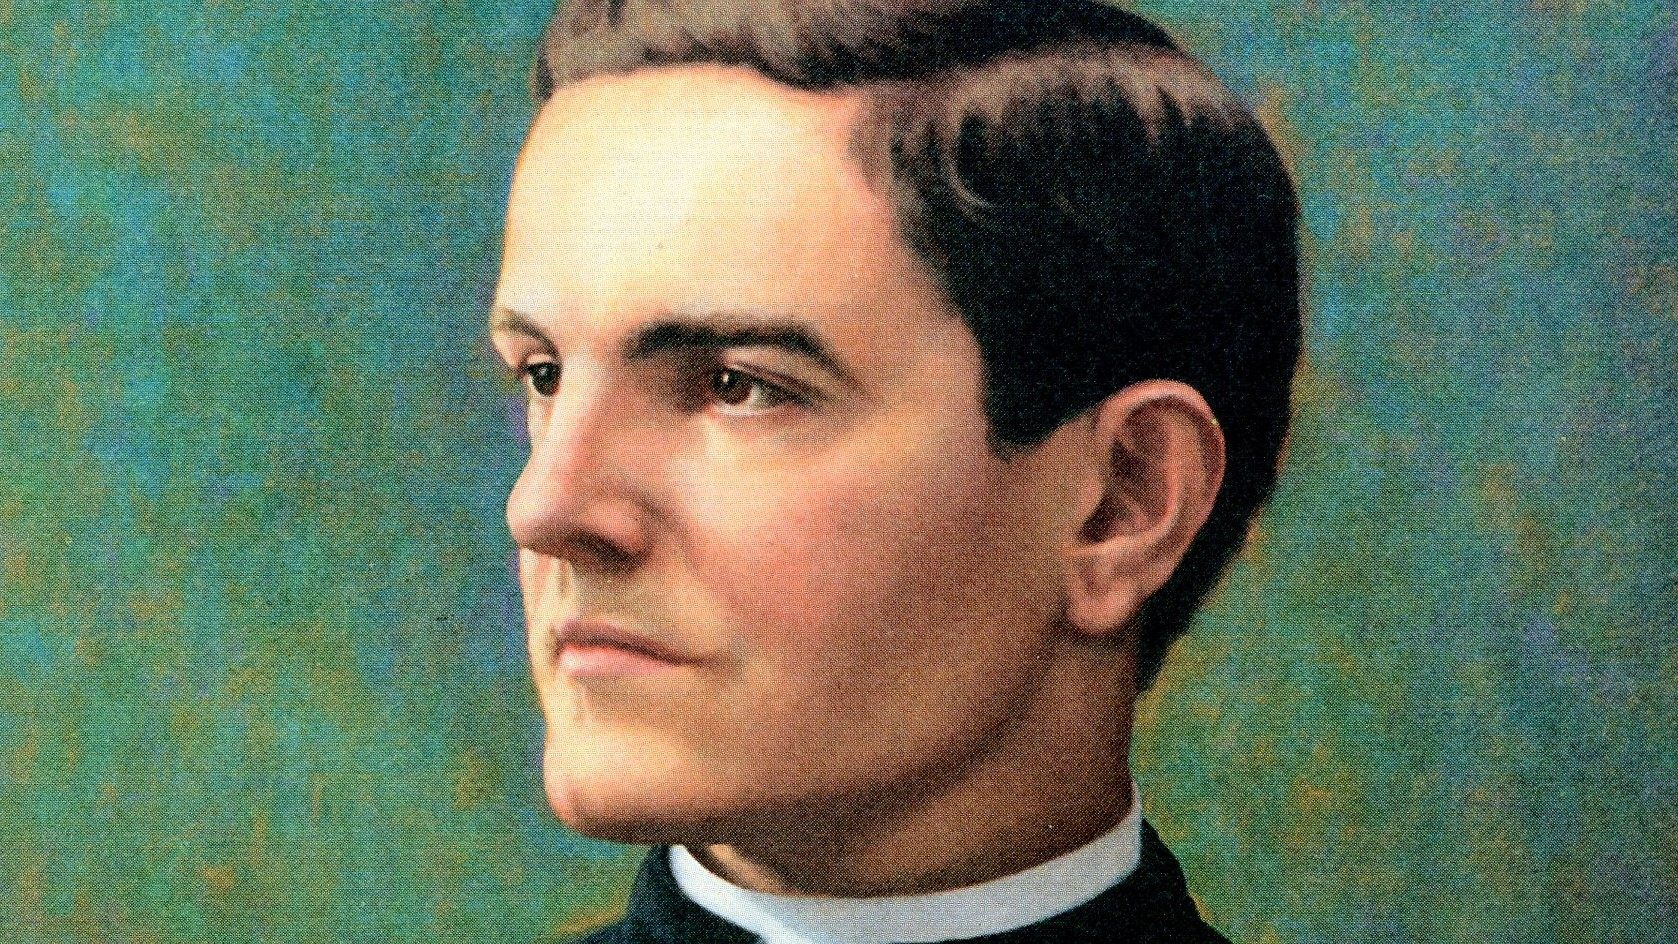 Fr. Michael McGivney to be beatified: Here's what you need to know